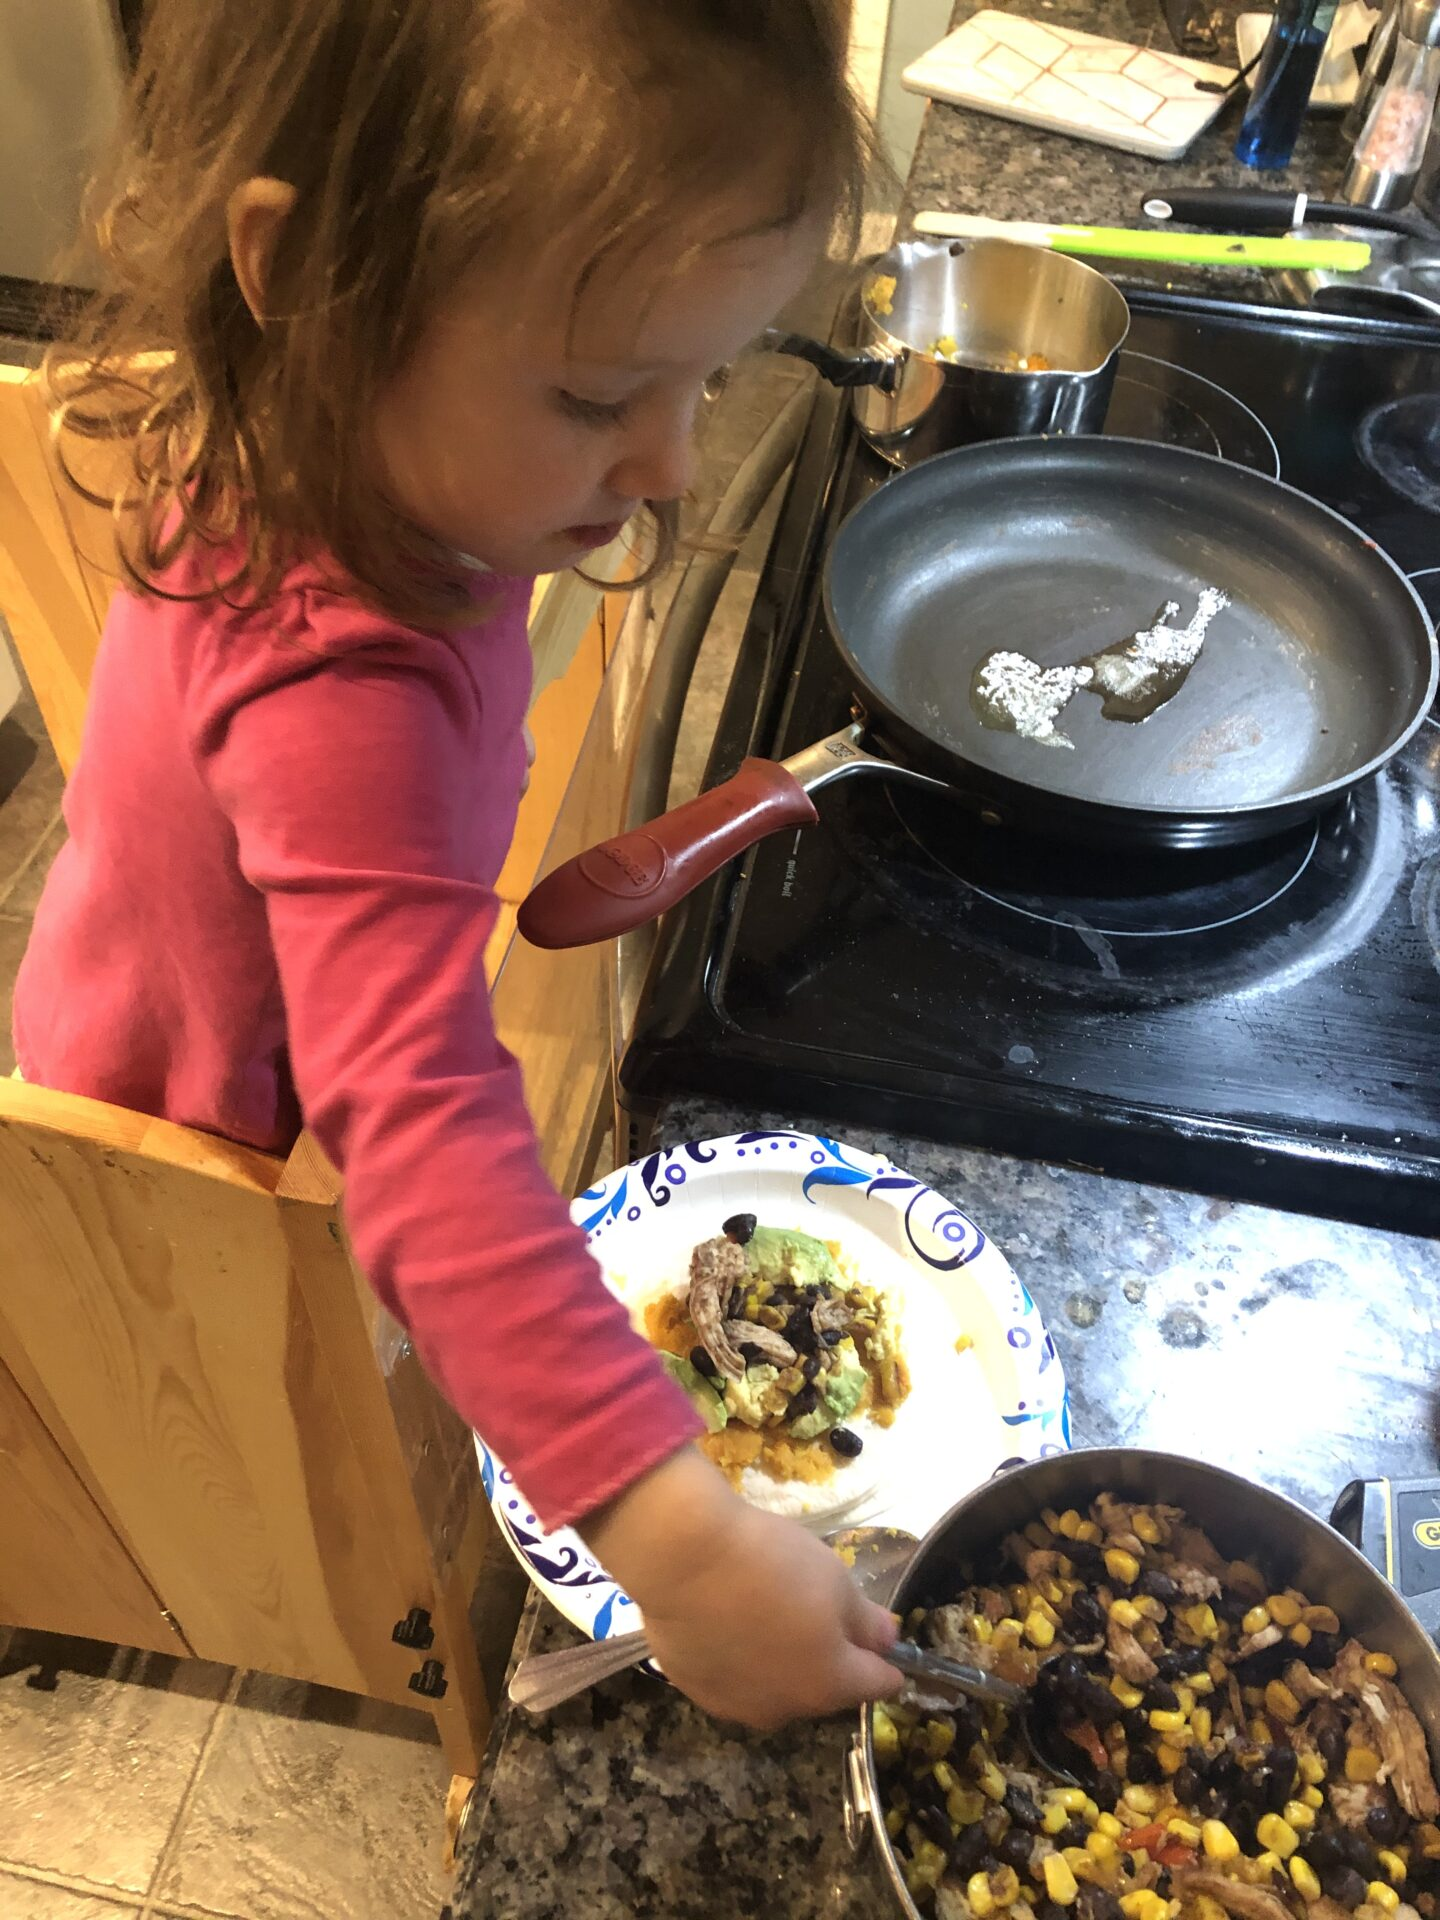 Toddler assembling her quesadillas for fun cooking activities for toddlers inspired by books.